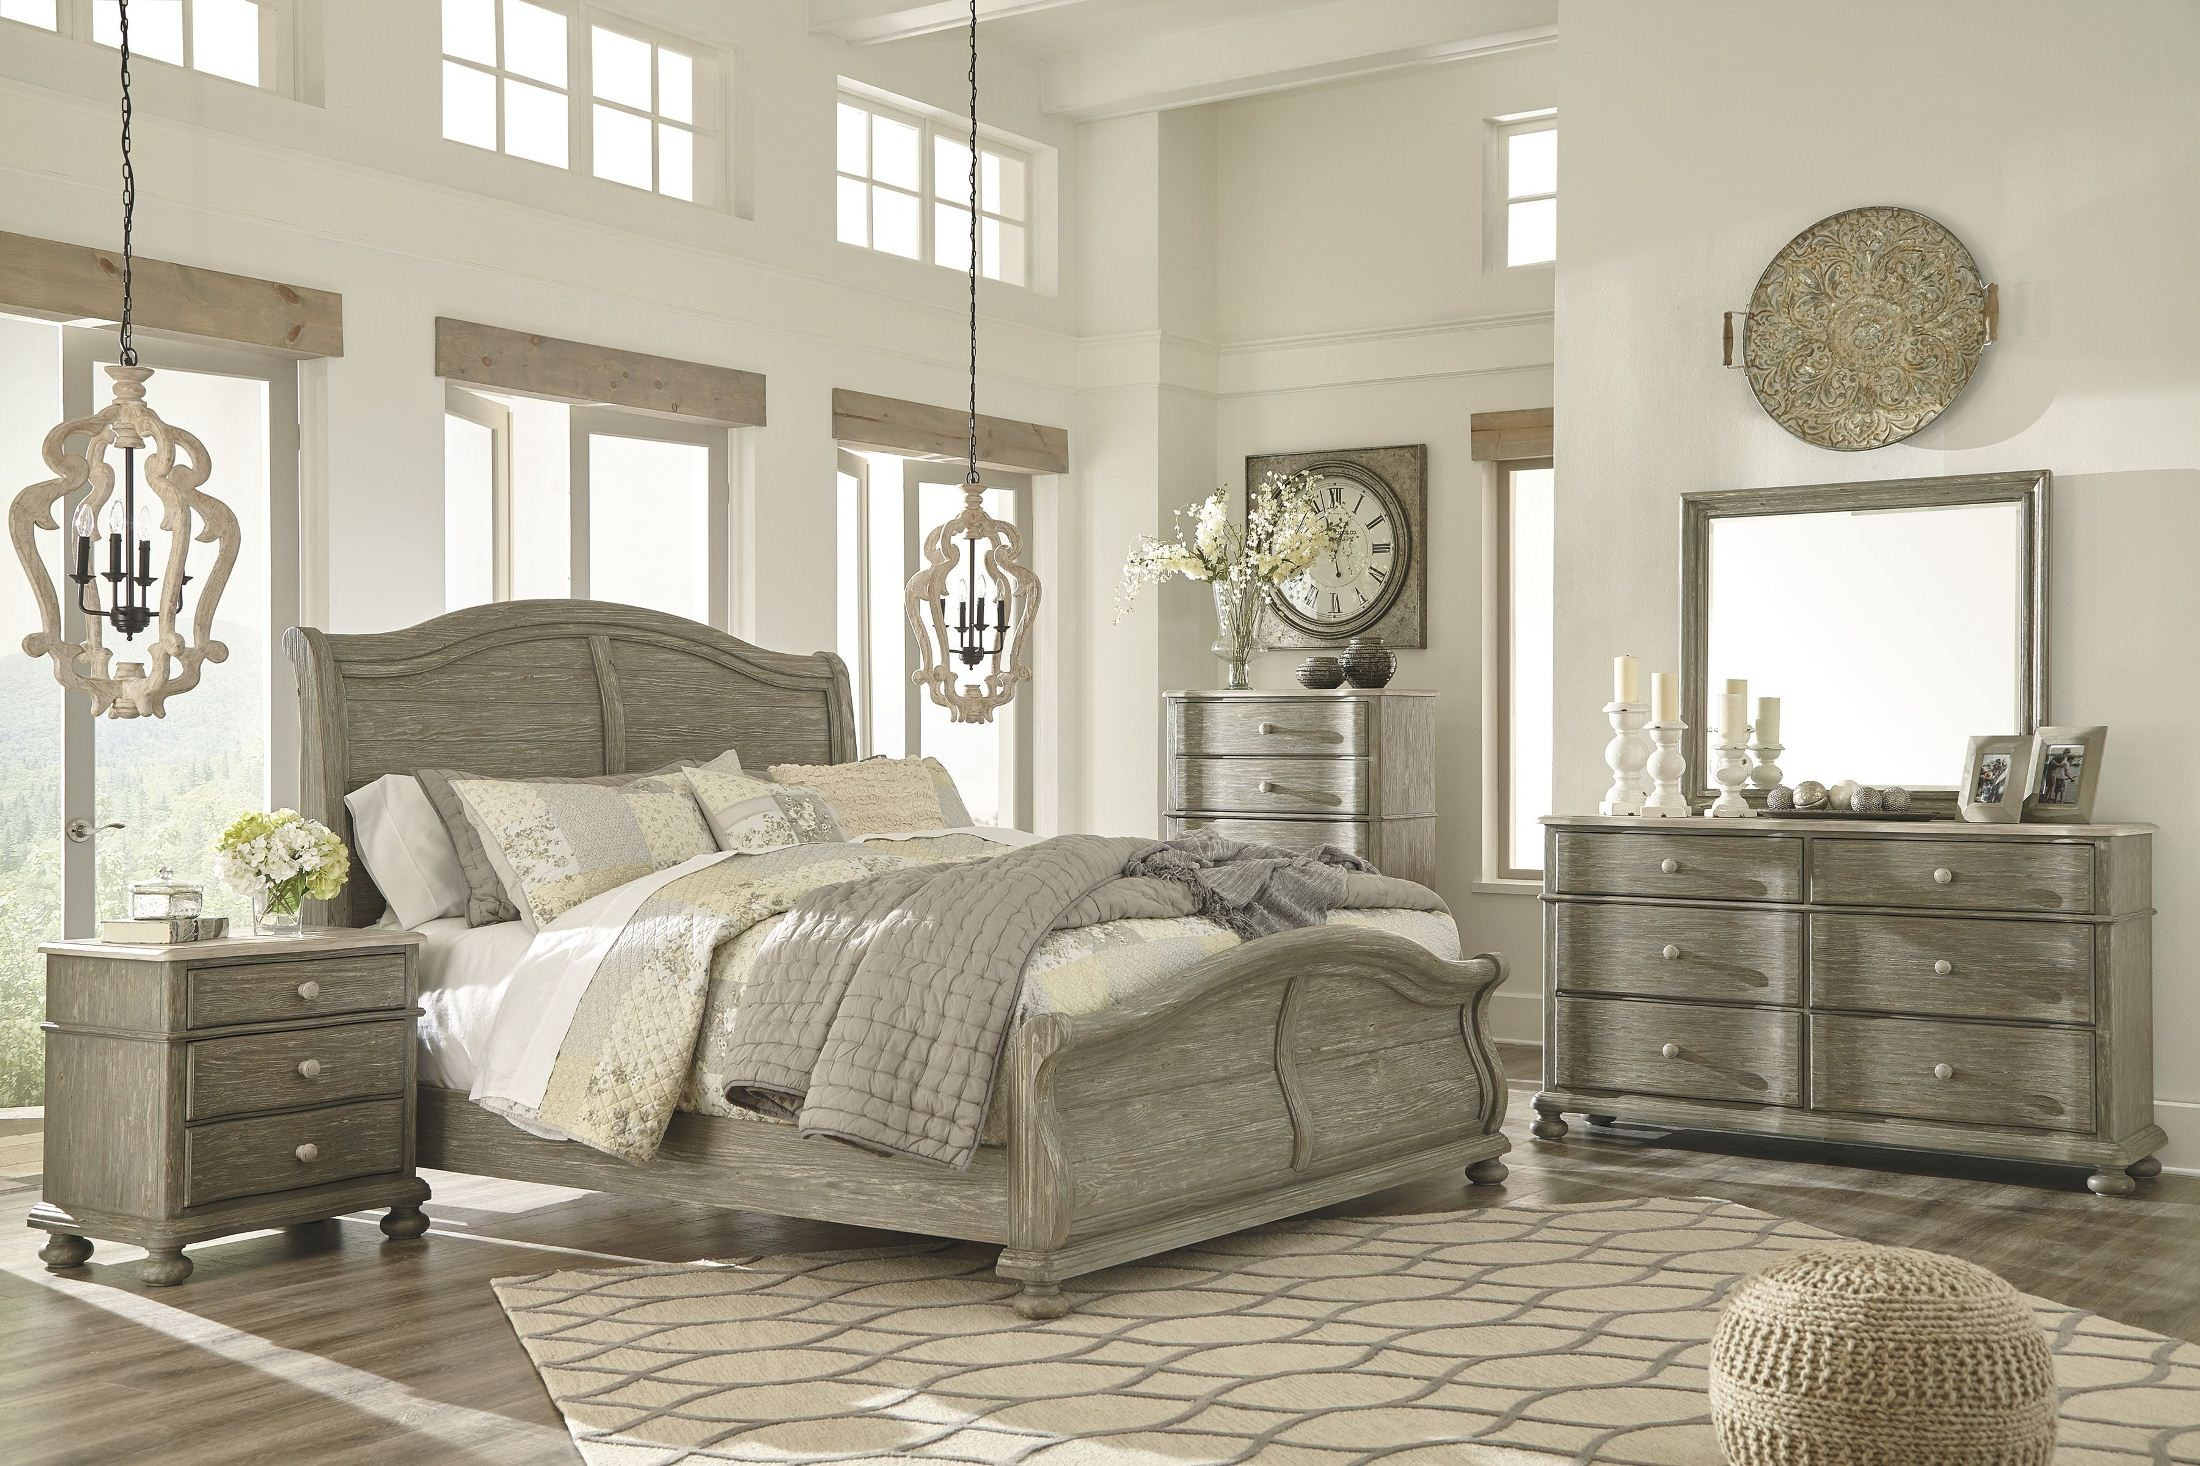 Marleny Gray And Whitewash Sleigh Bedroom Set From Ashley